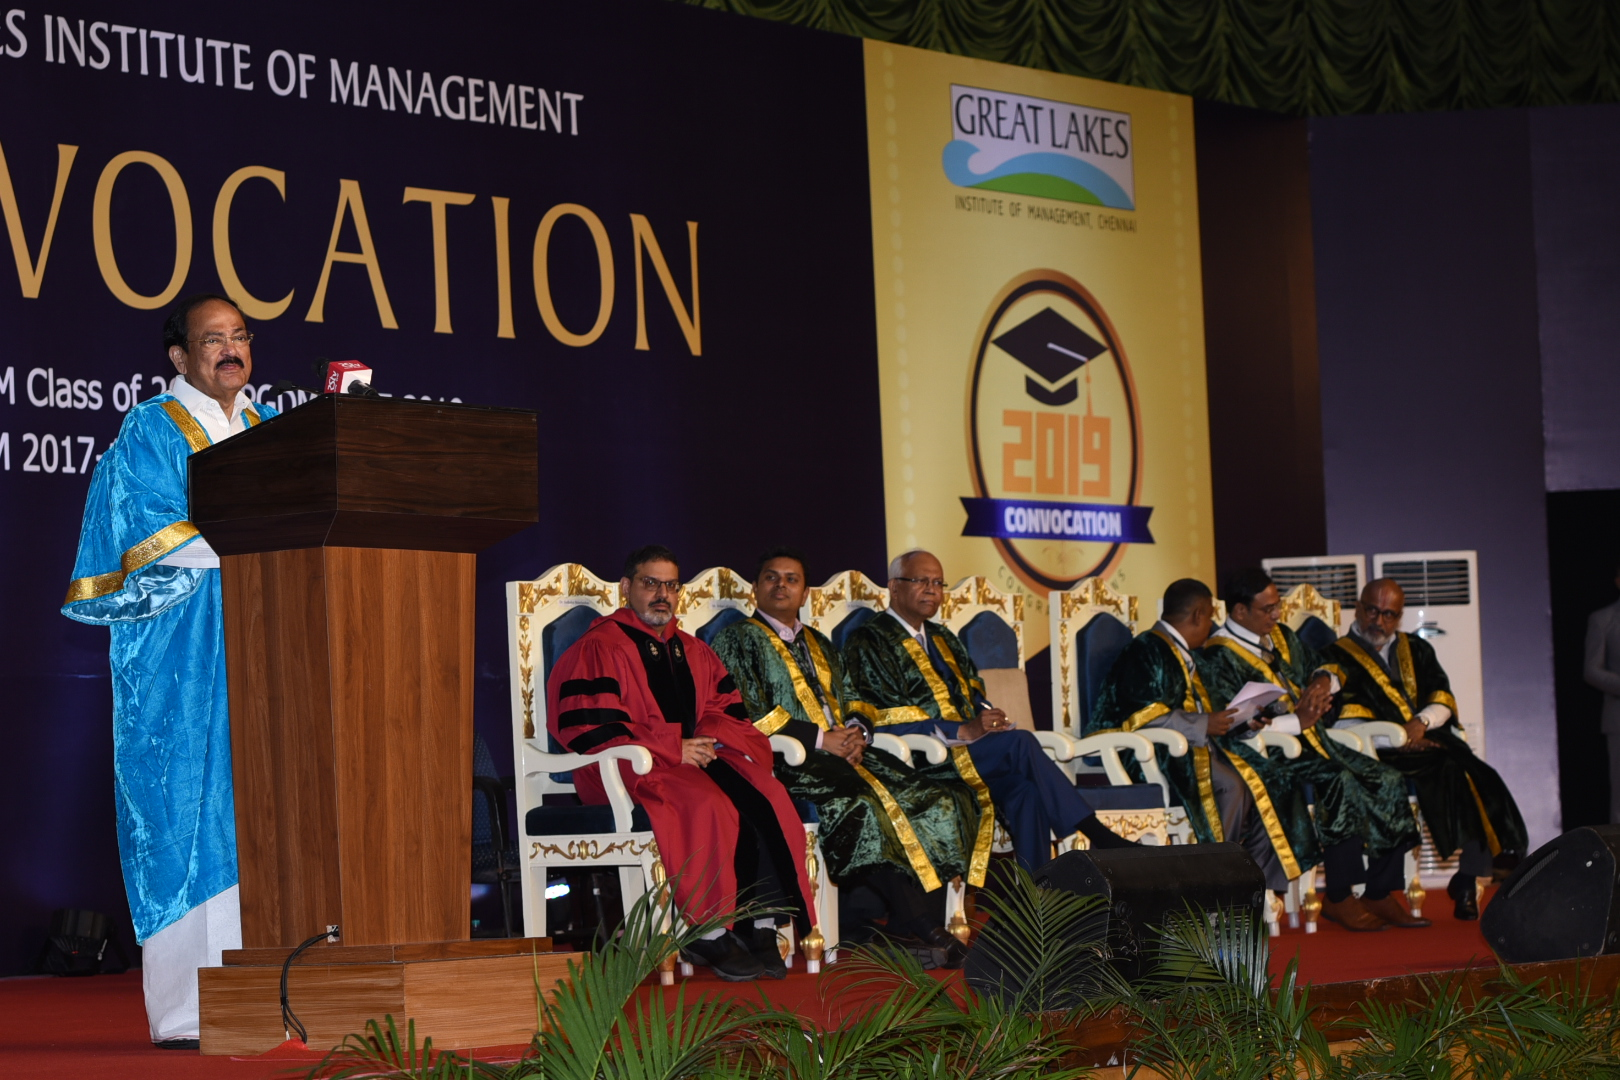 The Vice President, Shri M. Venkaiah Naidu addressing the gathering at the Convocation of the Great Lakes Institute of Management, in Chennai on May 21, 2019.